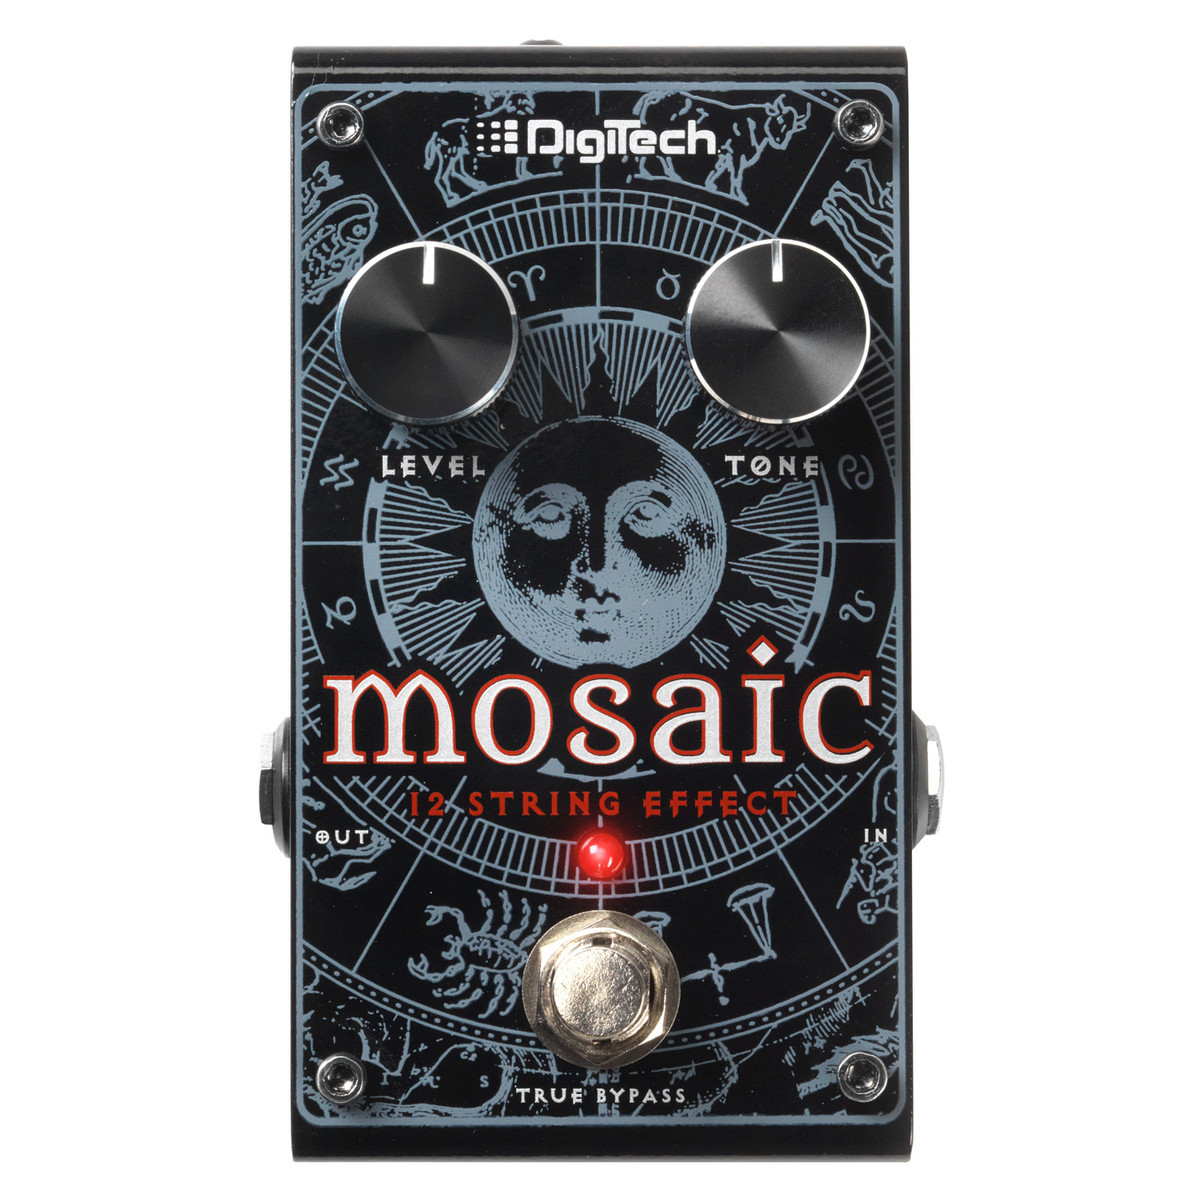 digitech mosaic polyphonic 12 string effect pedal b stock at gear4music. Black Bedroom Furniture Sets. Home Design Ideas